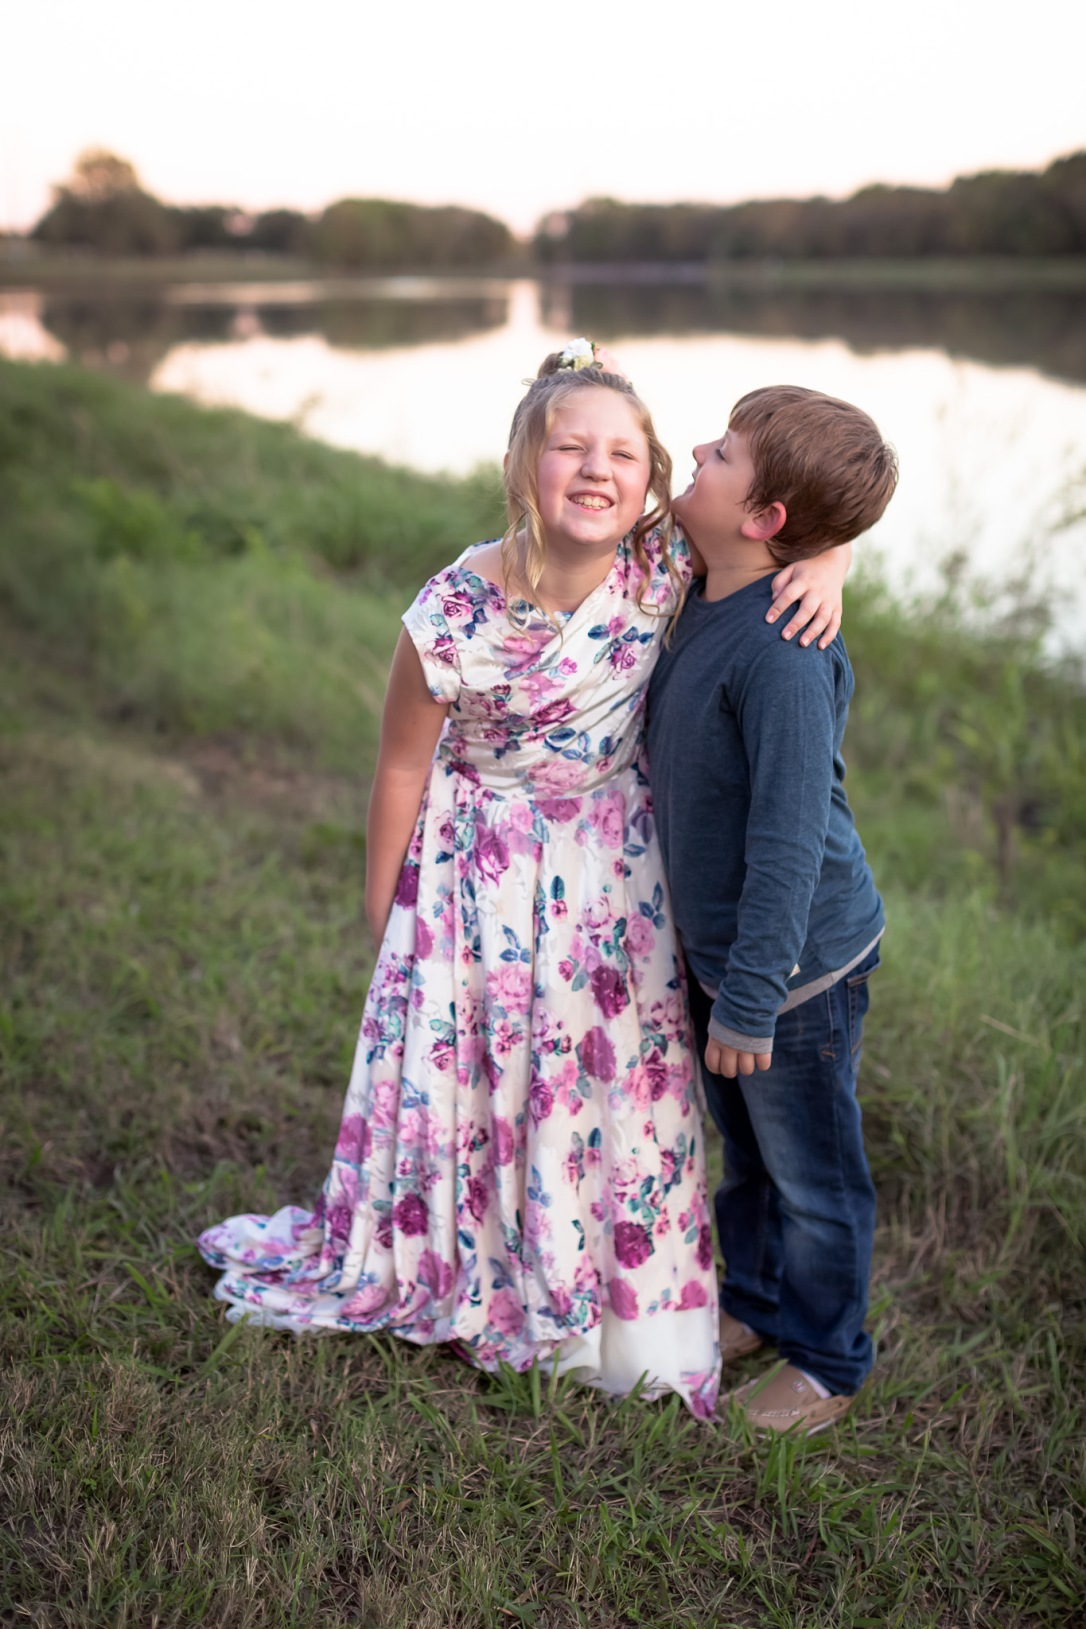 Plano Texas maternity photographer